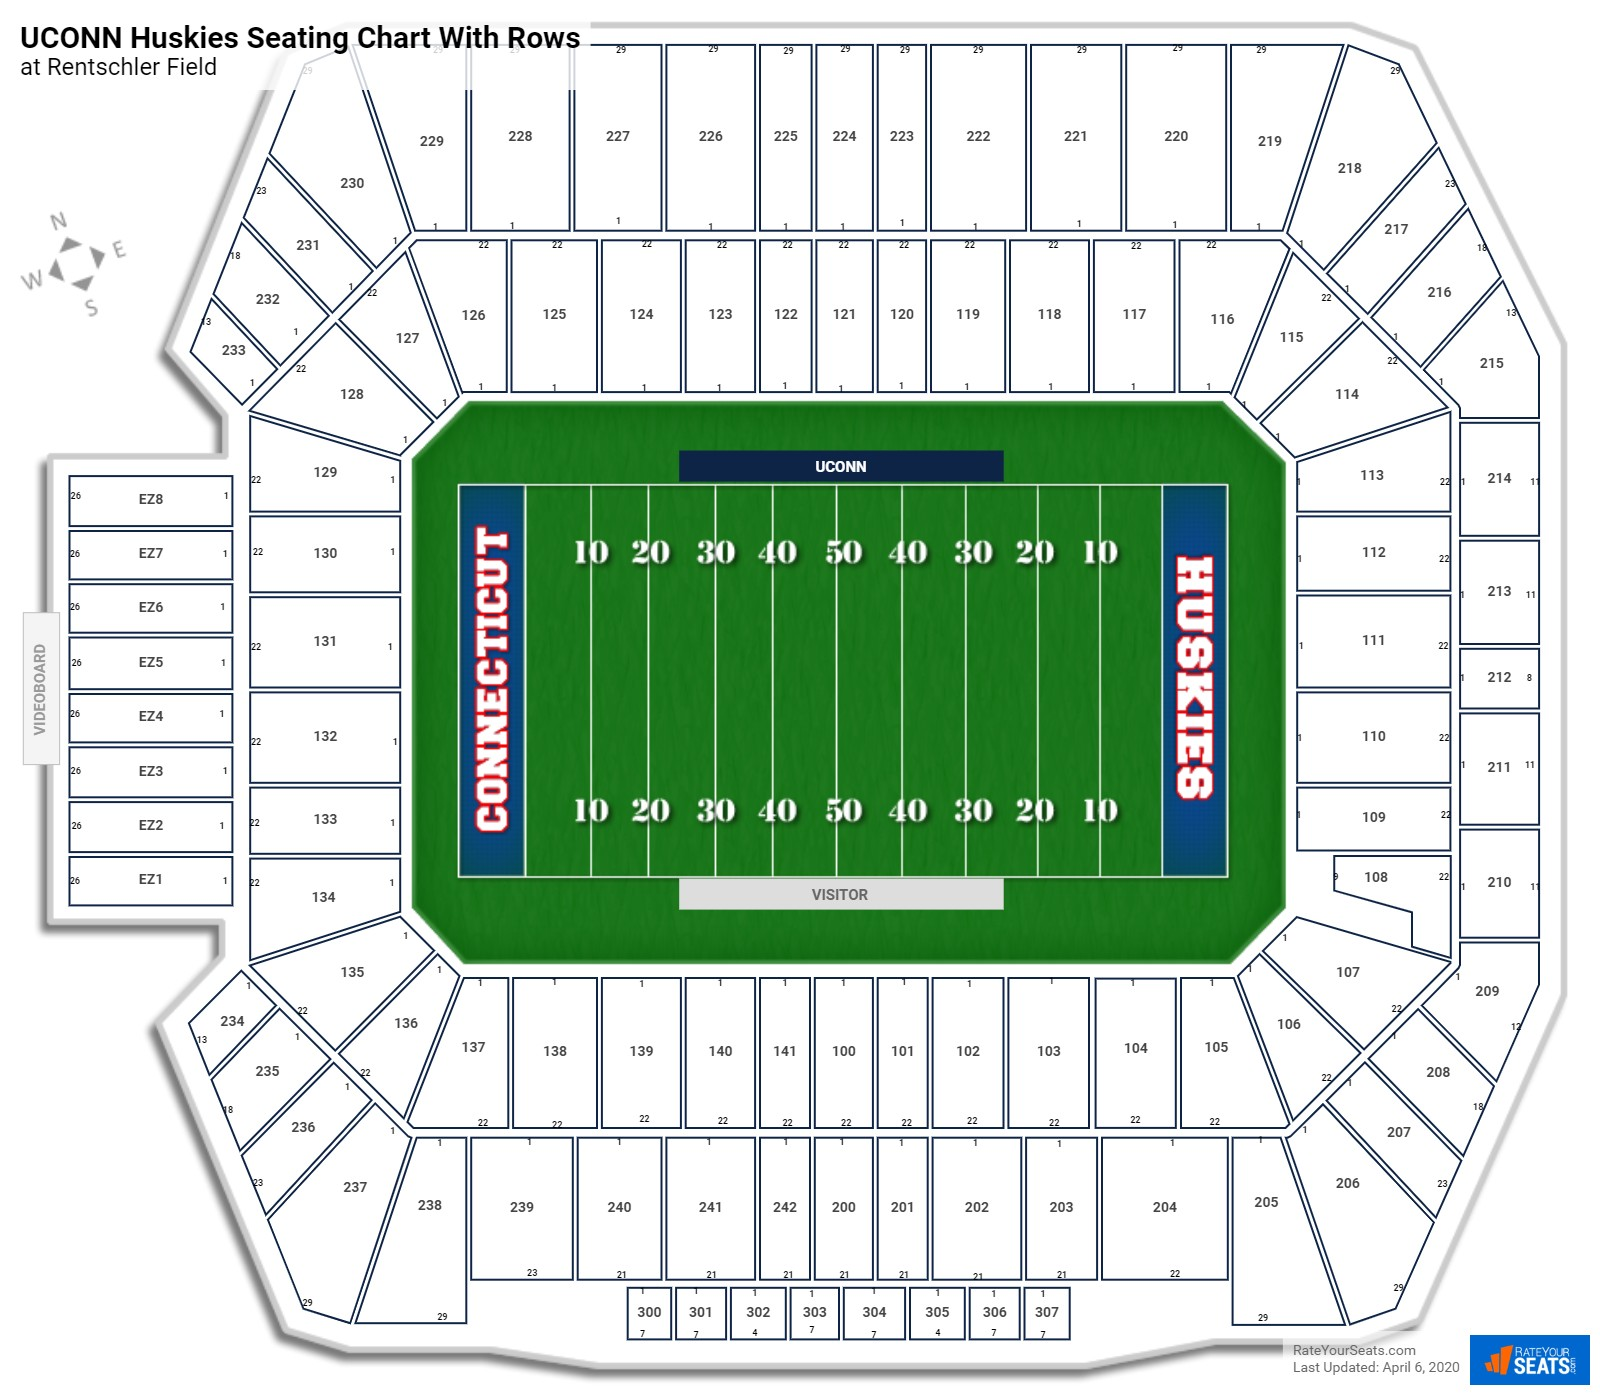 Rentschler Field seating chart with rows